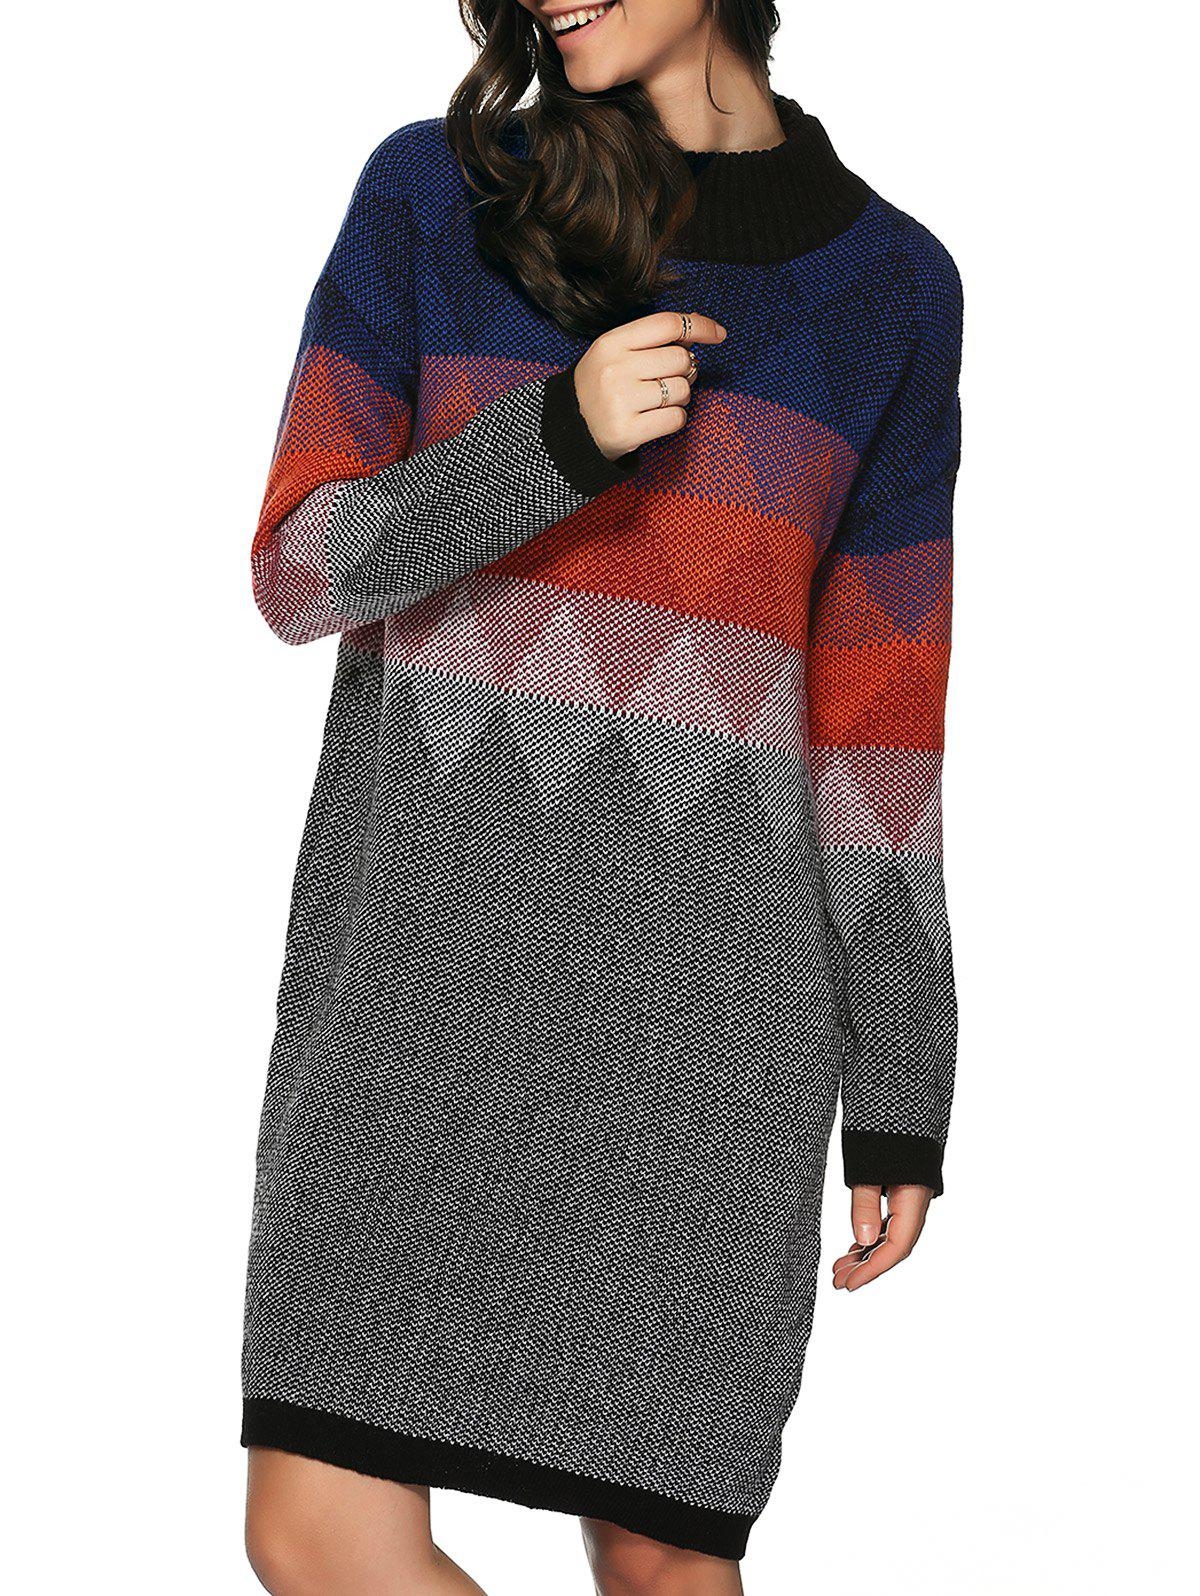 Robe Pull Zigzag Losange Imprimé Tunique en Tricot - multicolore ONE SIZE(FIT SIZE XS TO M)